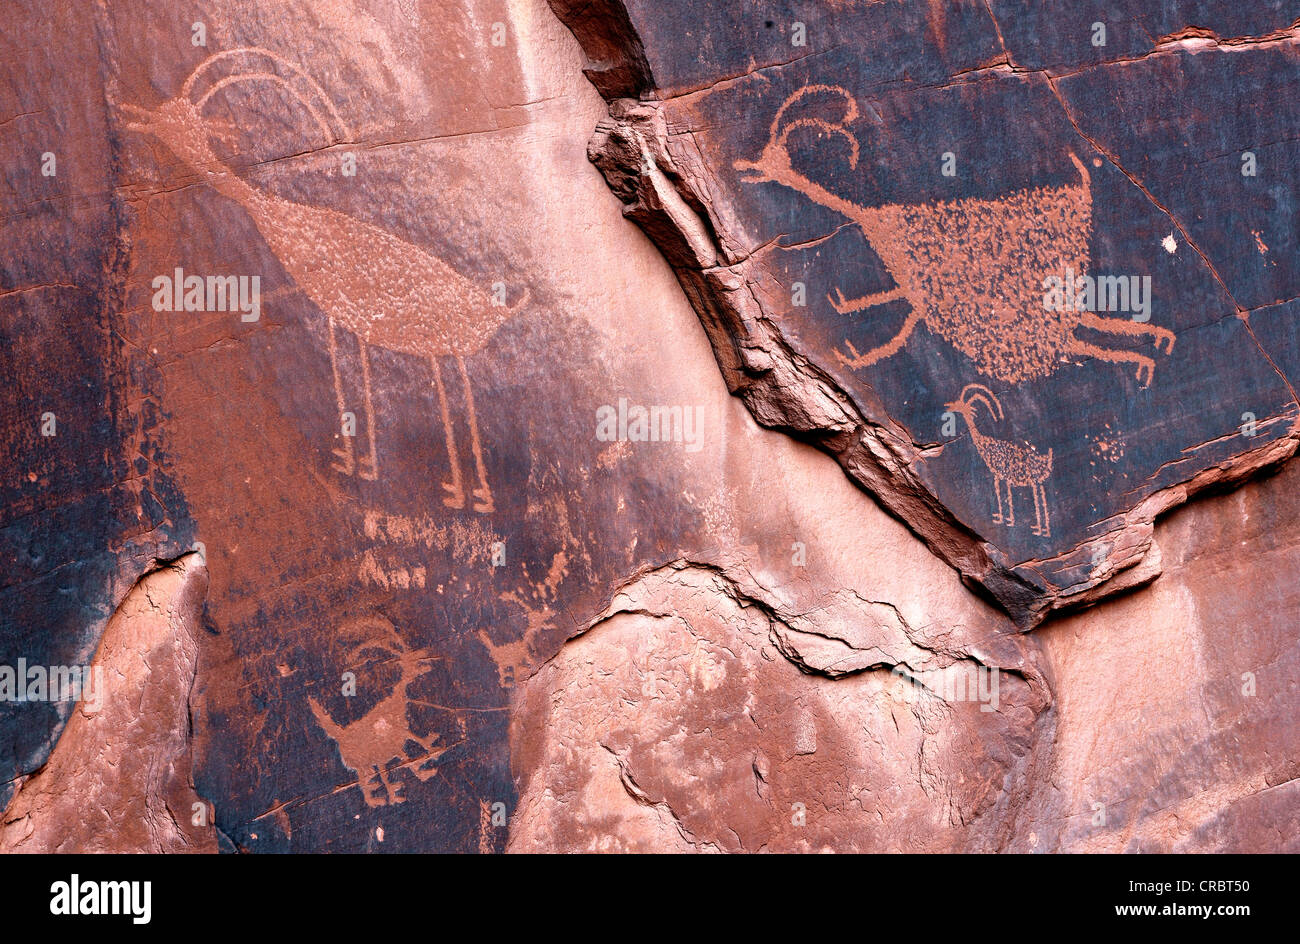 Petroglyphs etched in sandstone symbols prehistoric and historic petroglyphs etched in sandstone symbols prehistoric and historic rock art wall drawings by the anasazi native americans biocorpaavc Image collections